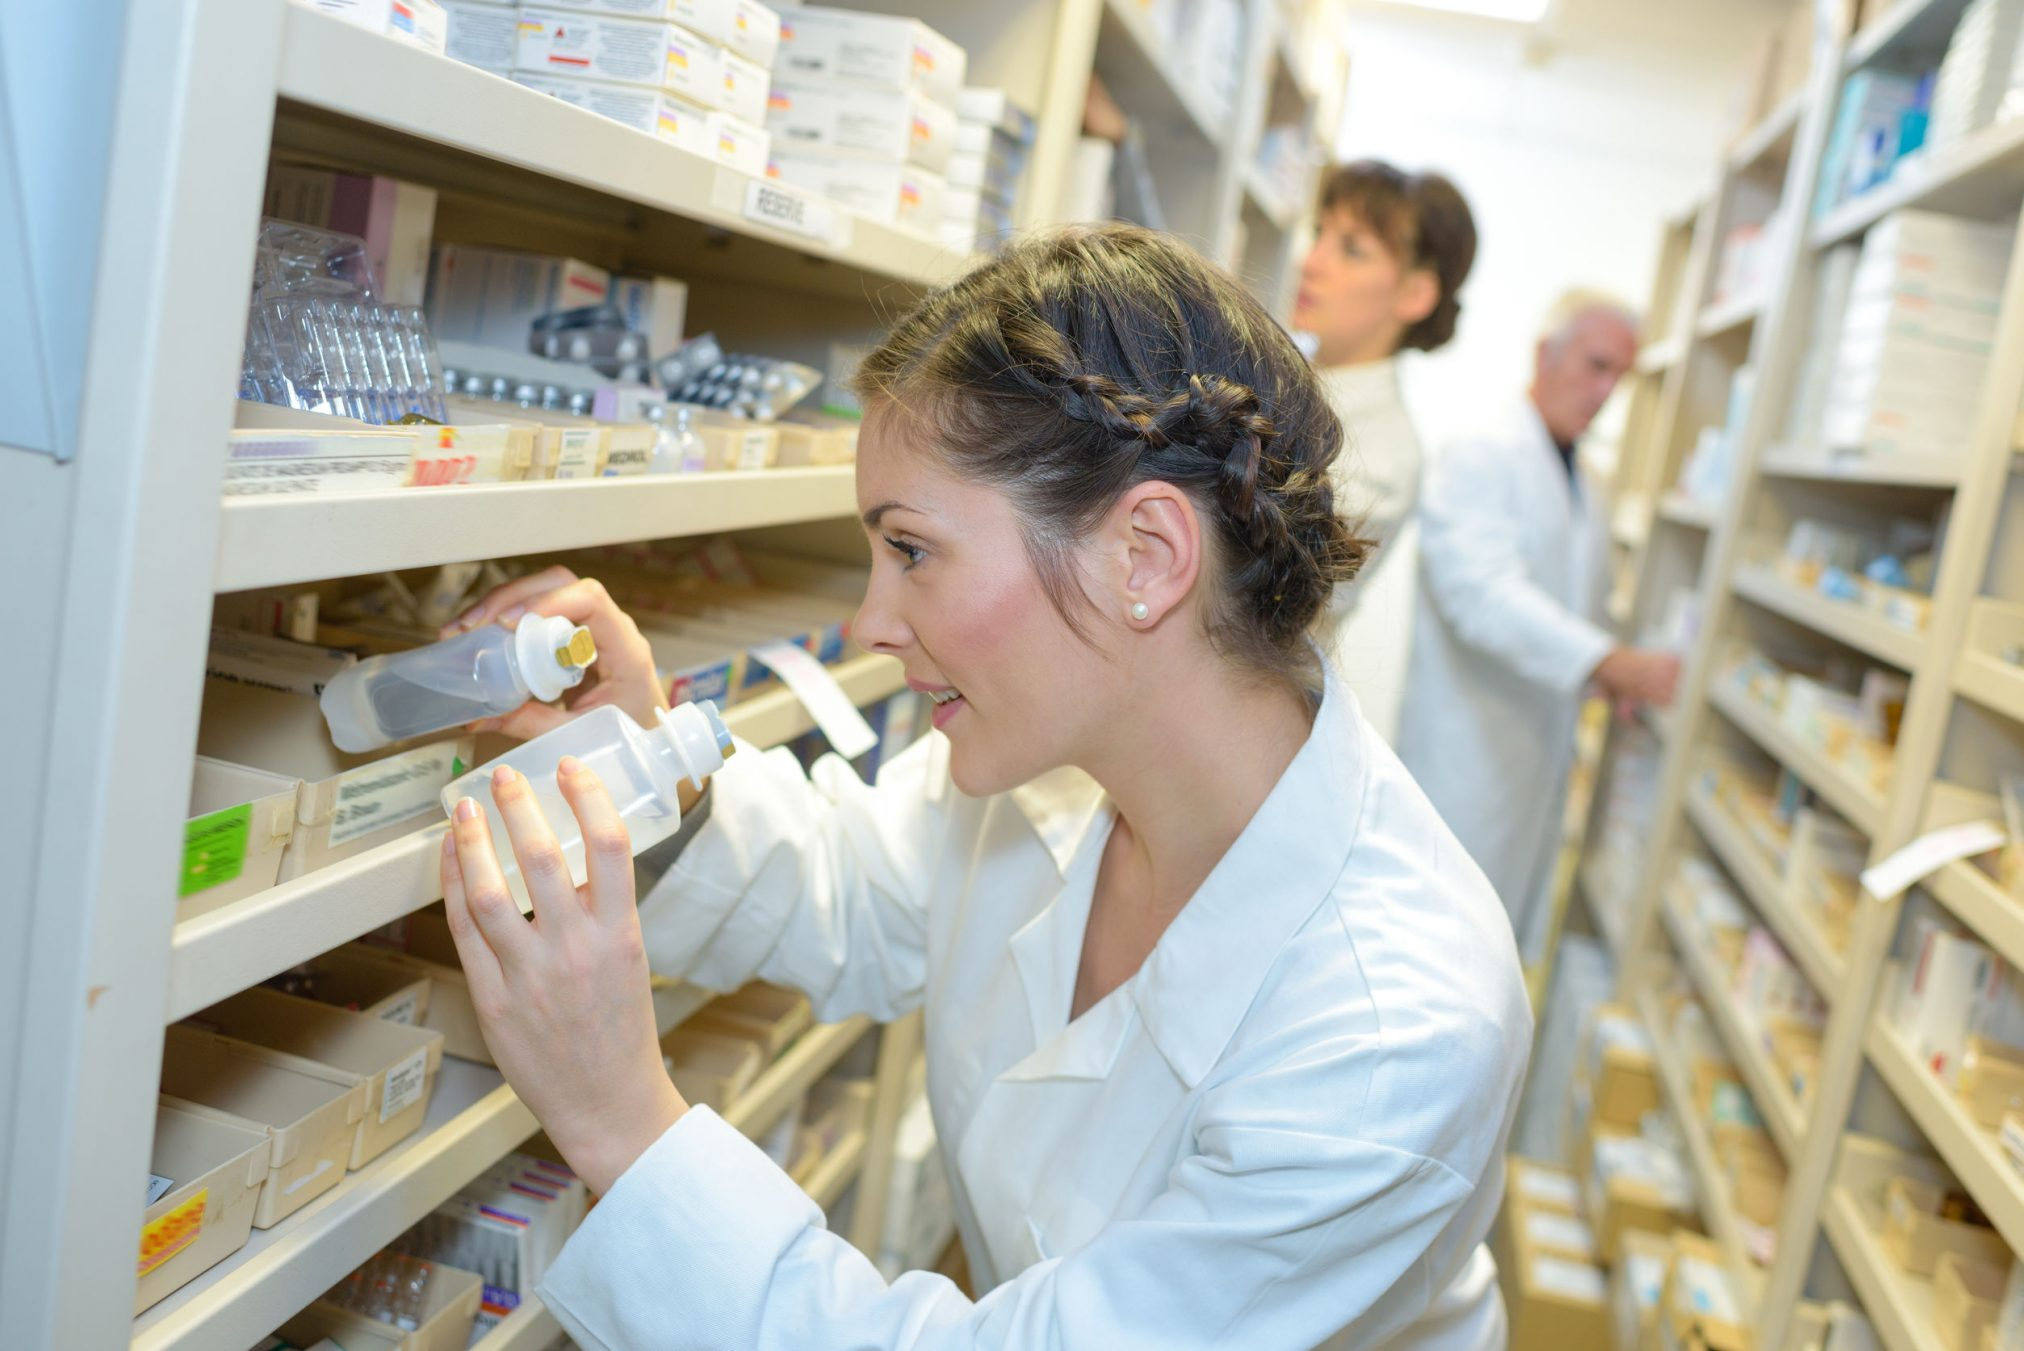 Pharmacist choosing stock from shelves